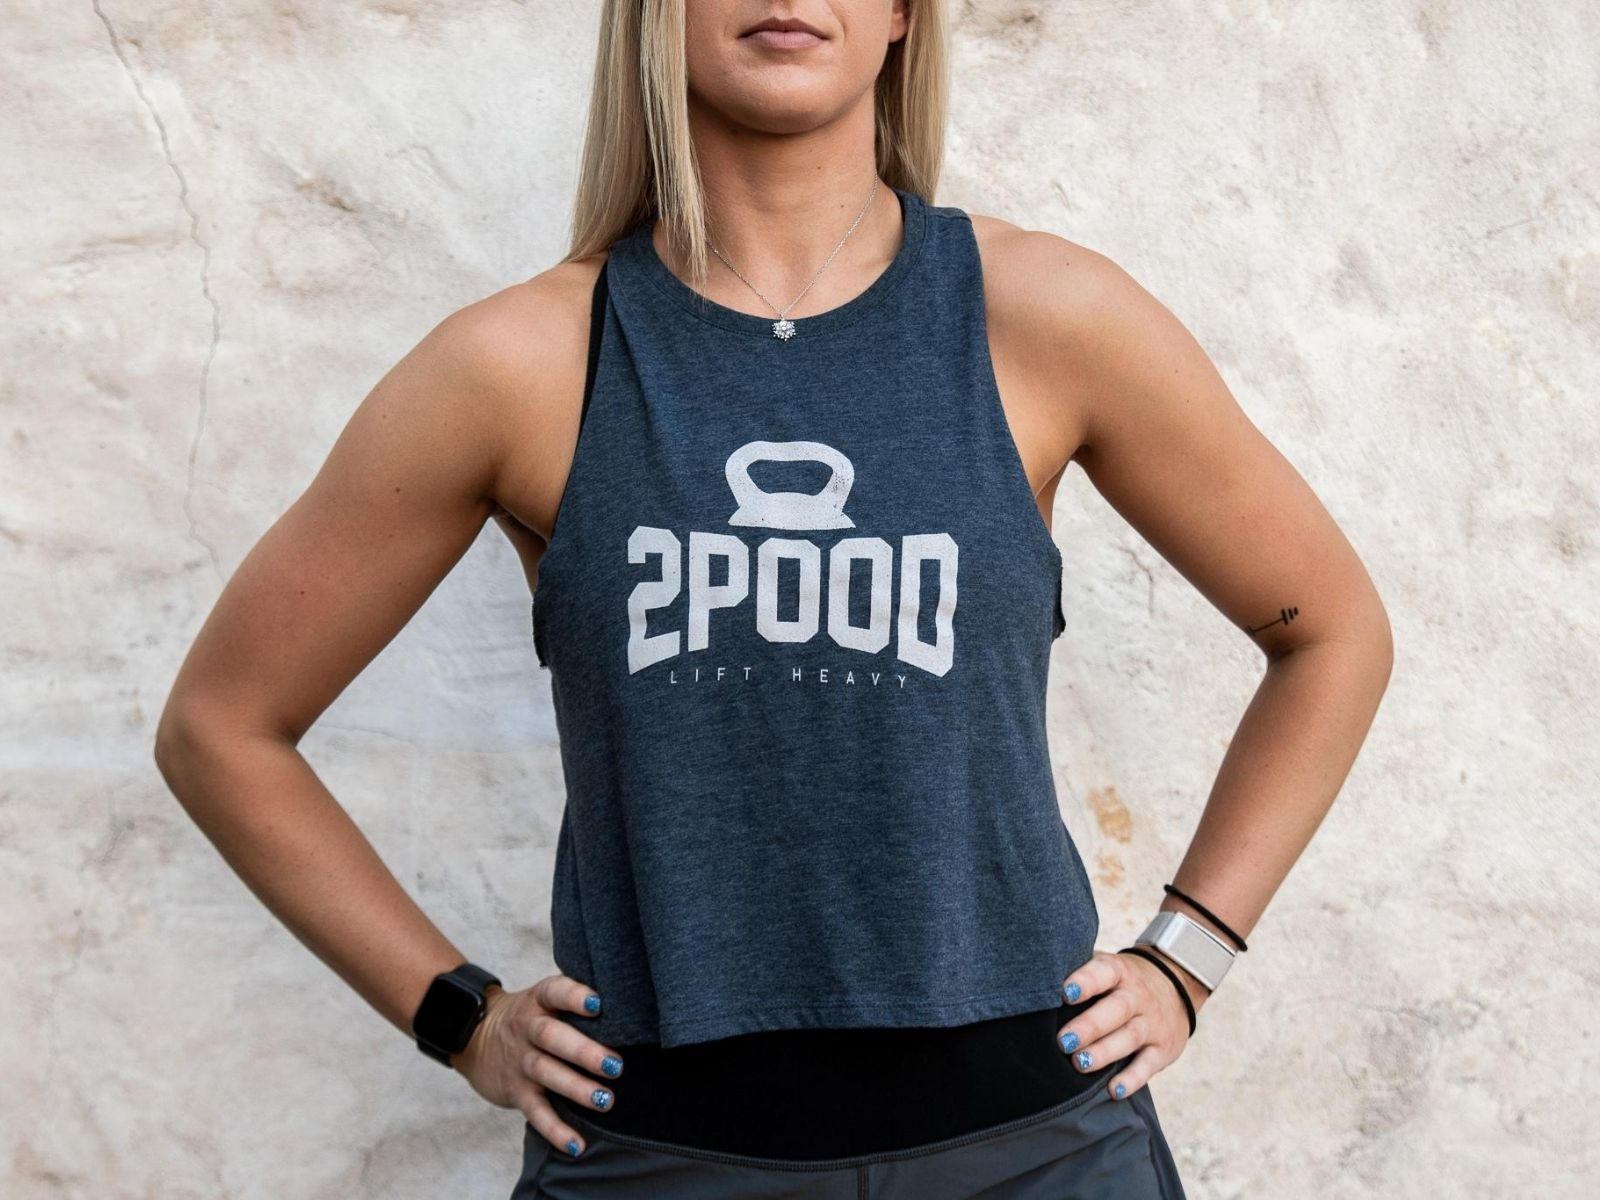 Heathered Navy 2POOD Crop Tank - 2POOD